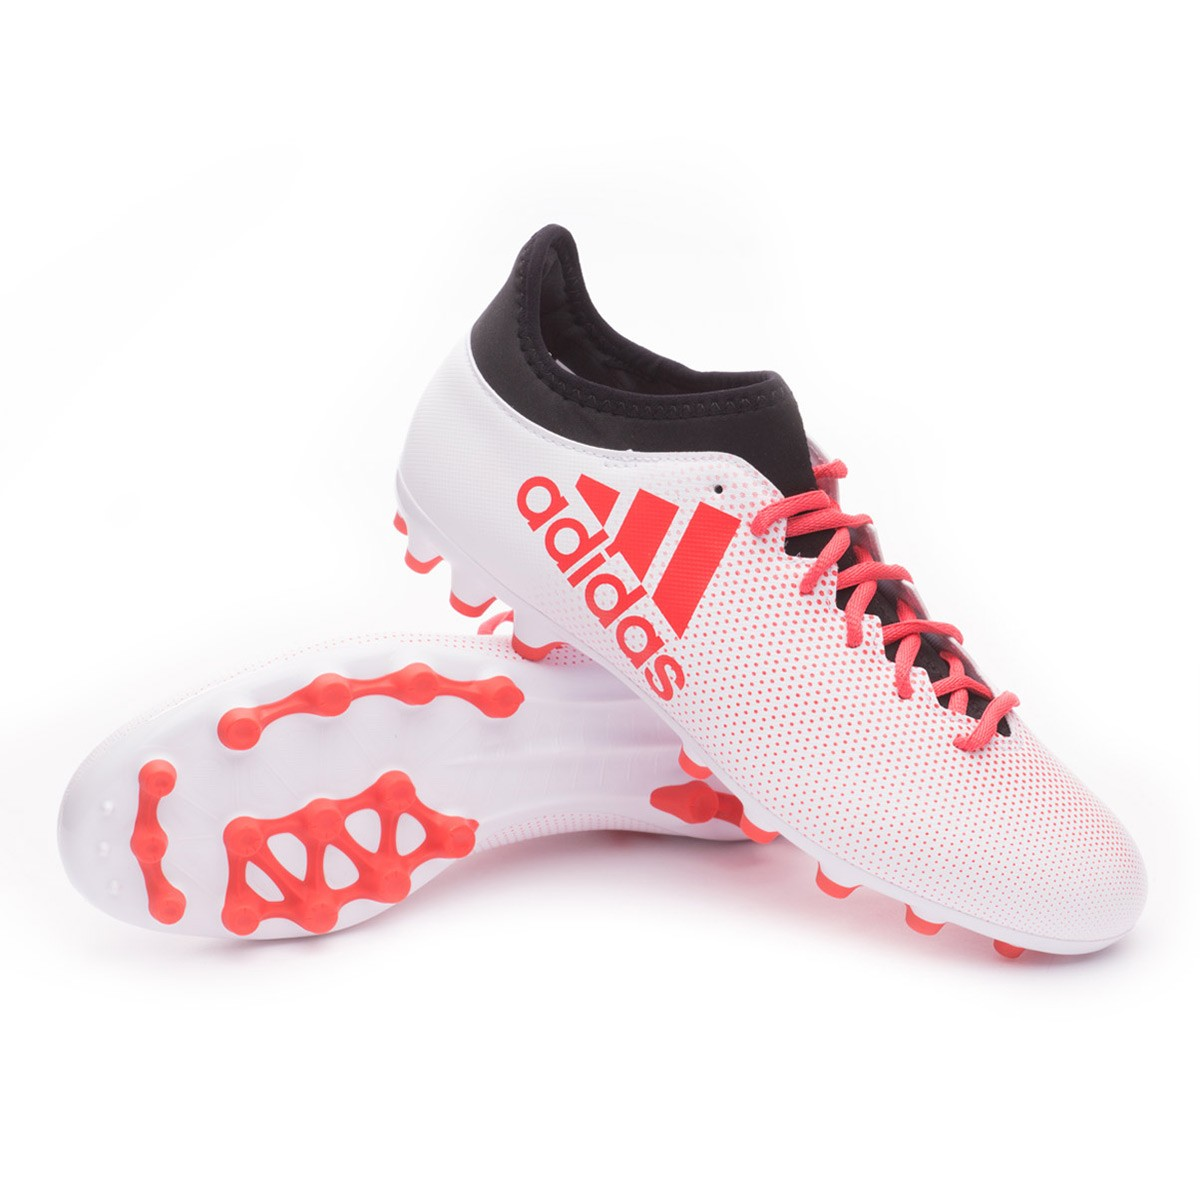 new product 01b1c 3c3b2 Bota X 17.3 AG Grey-Real coral-Core black